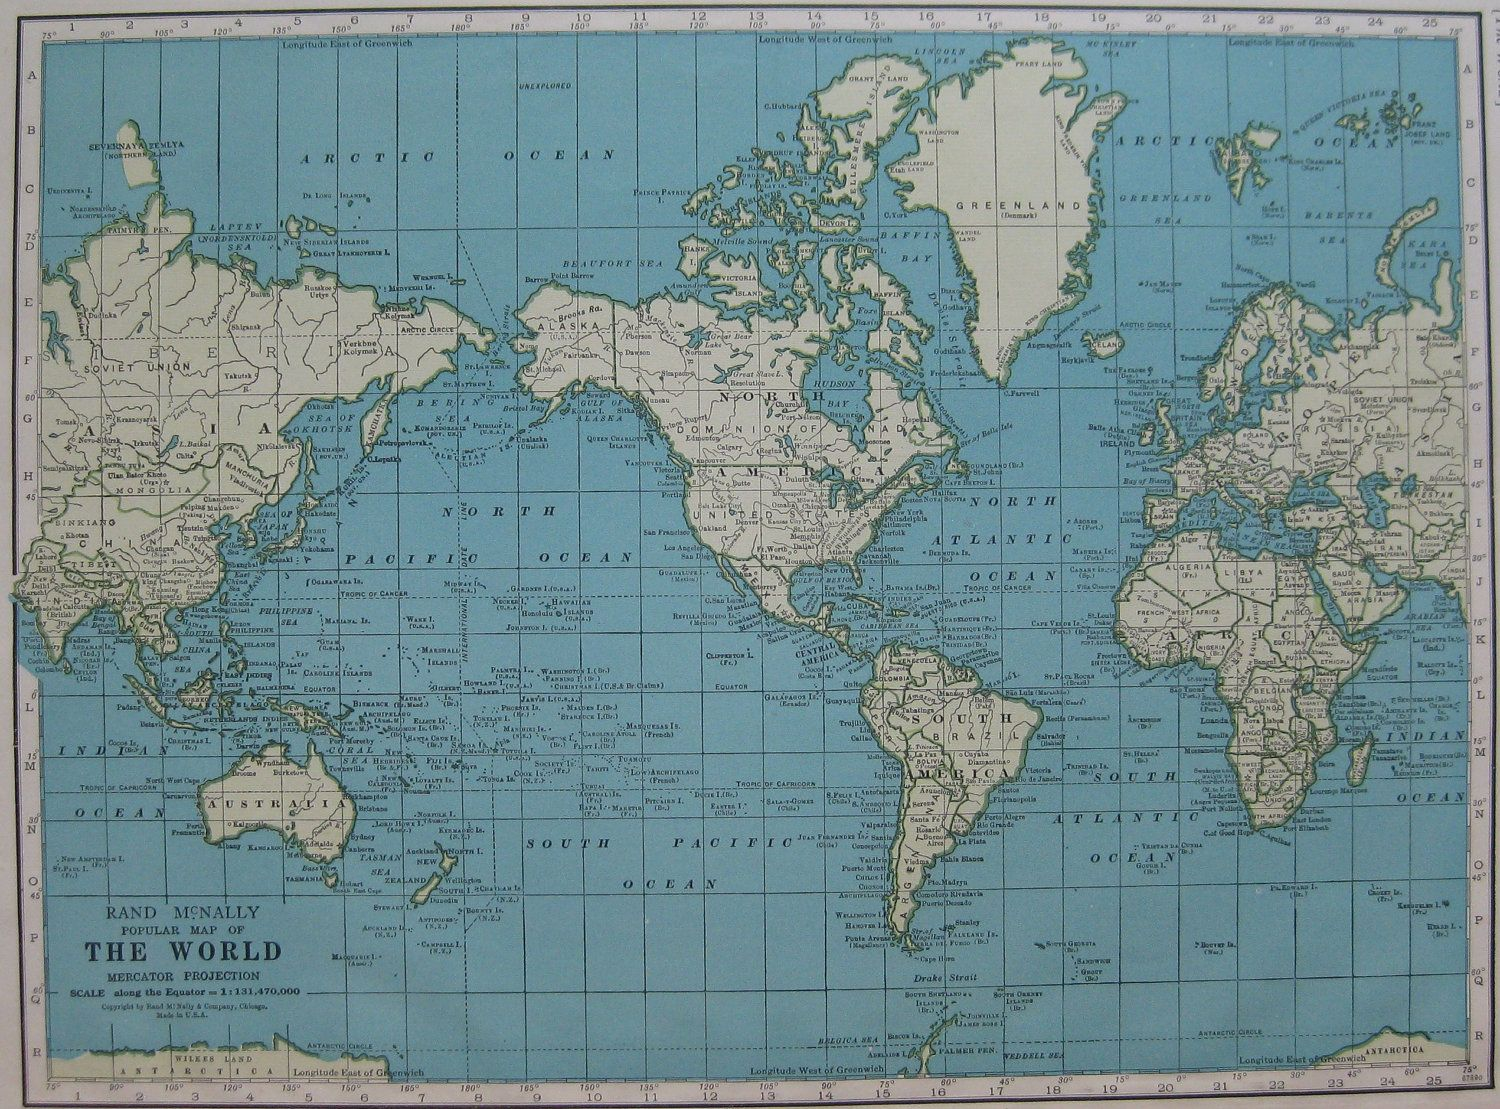 Vintage world map 1940s antique map from 1947 atlas unusual color vintage world map 1940s antique map from 1947 atlas unusual color plaindealing 876 1295 gumiabroncs Gallery